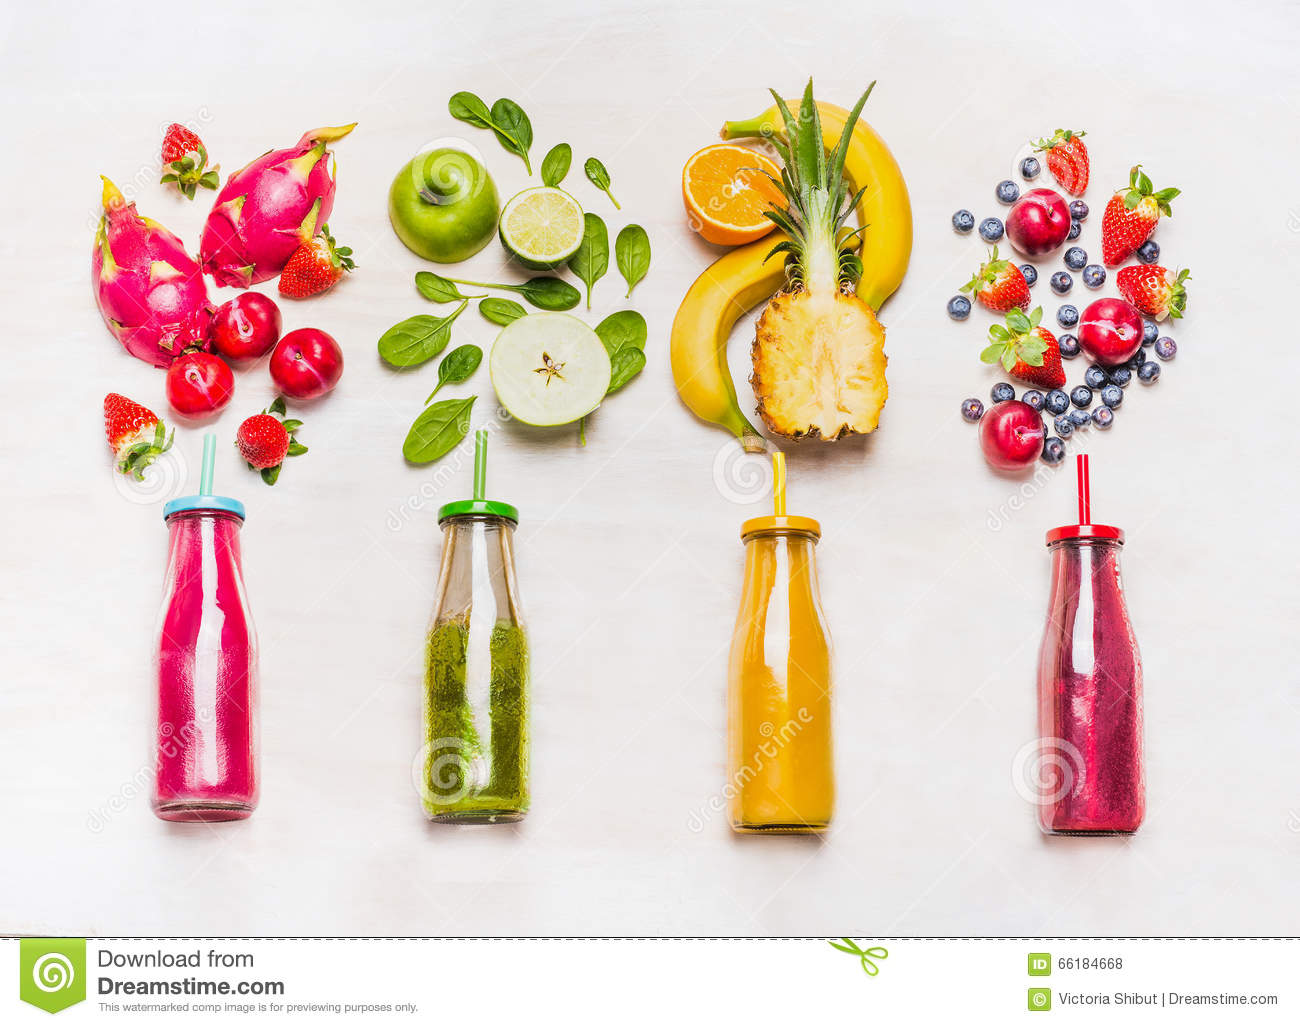 Assortment of fruit and vegetables smoothies in glass bottles with straws on white wooden background.